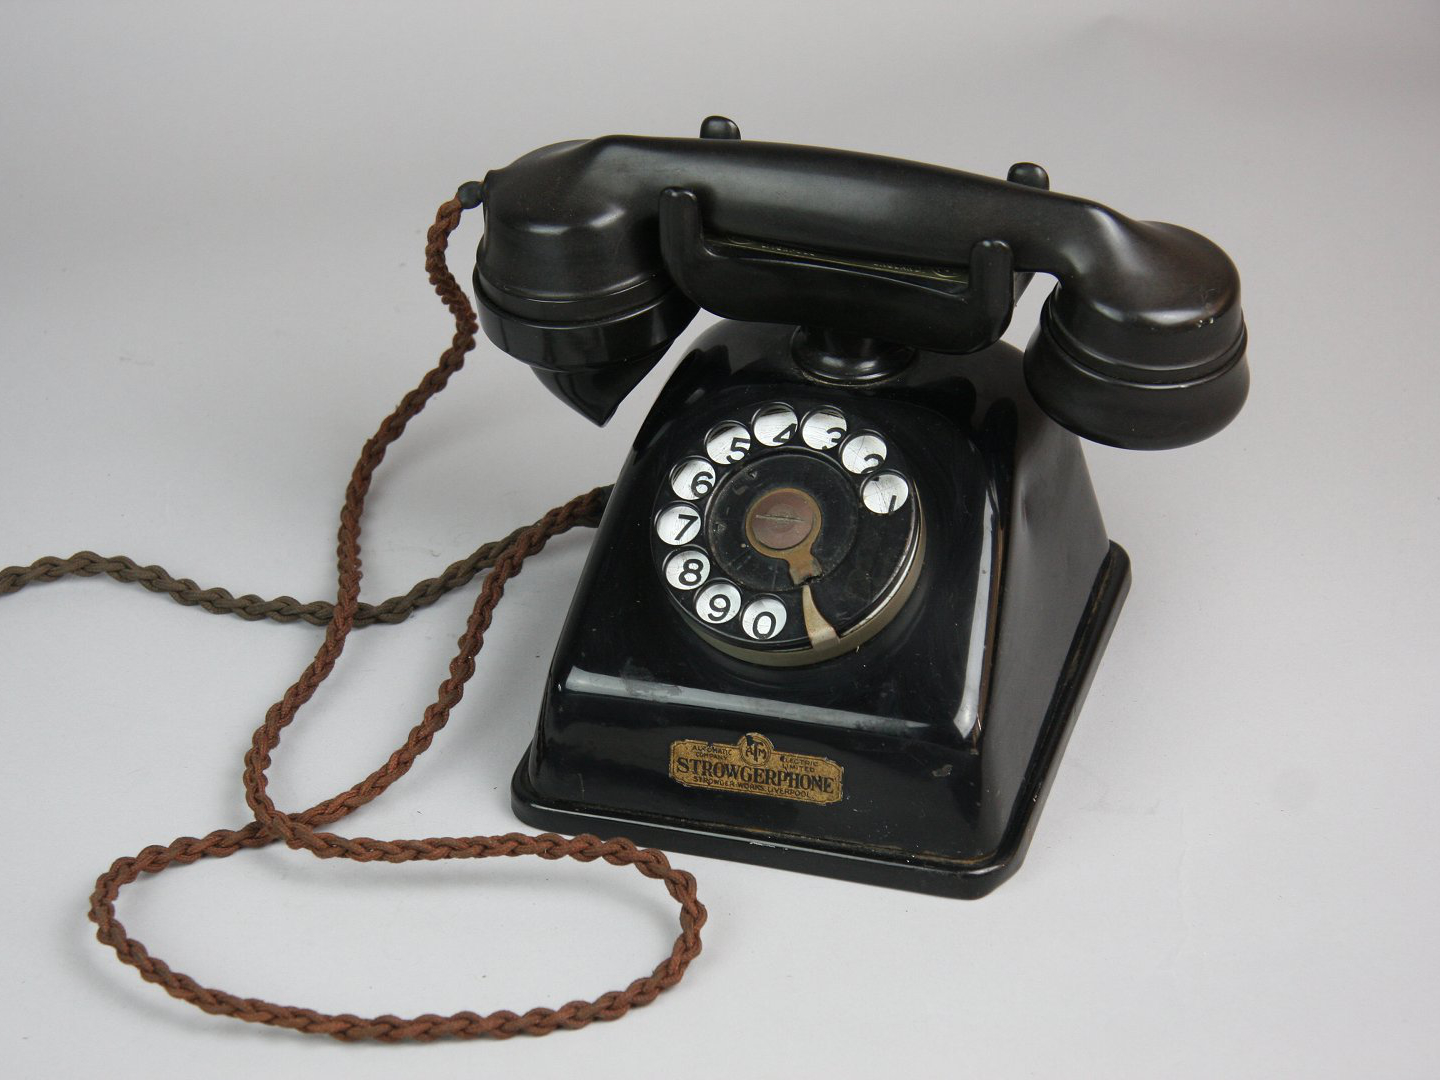 Integrated Strowgerphone